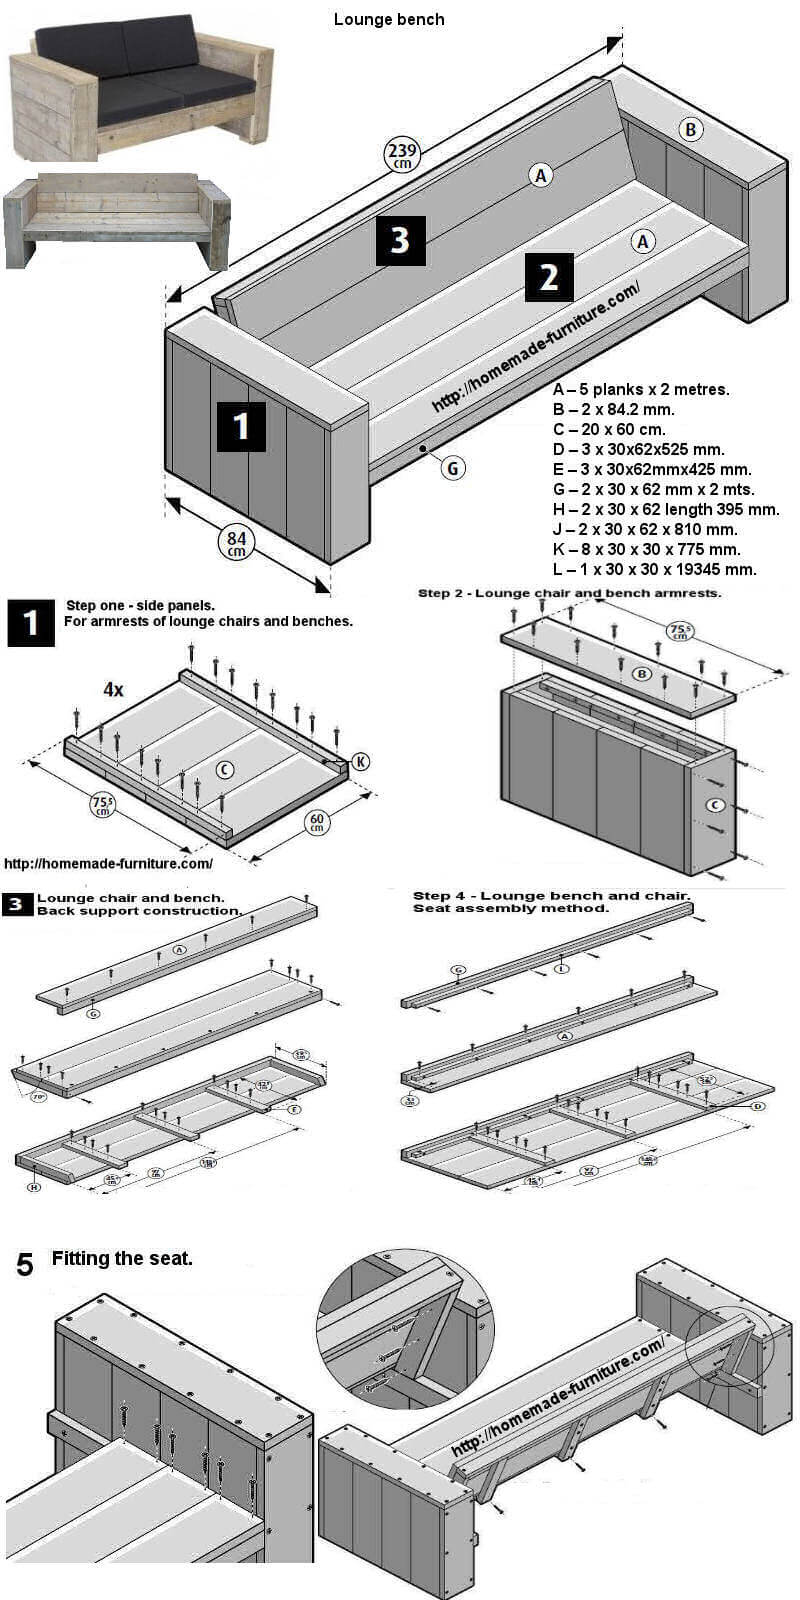 Free construction drawings for a homemade garden bench.